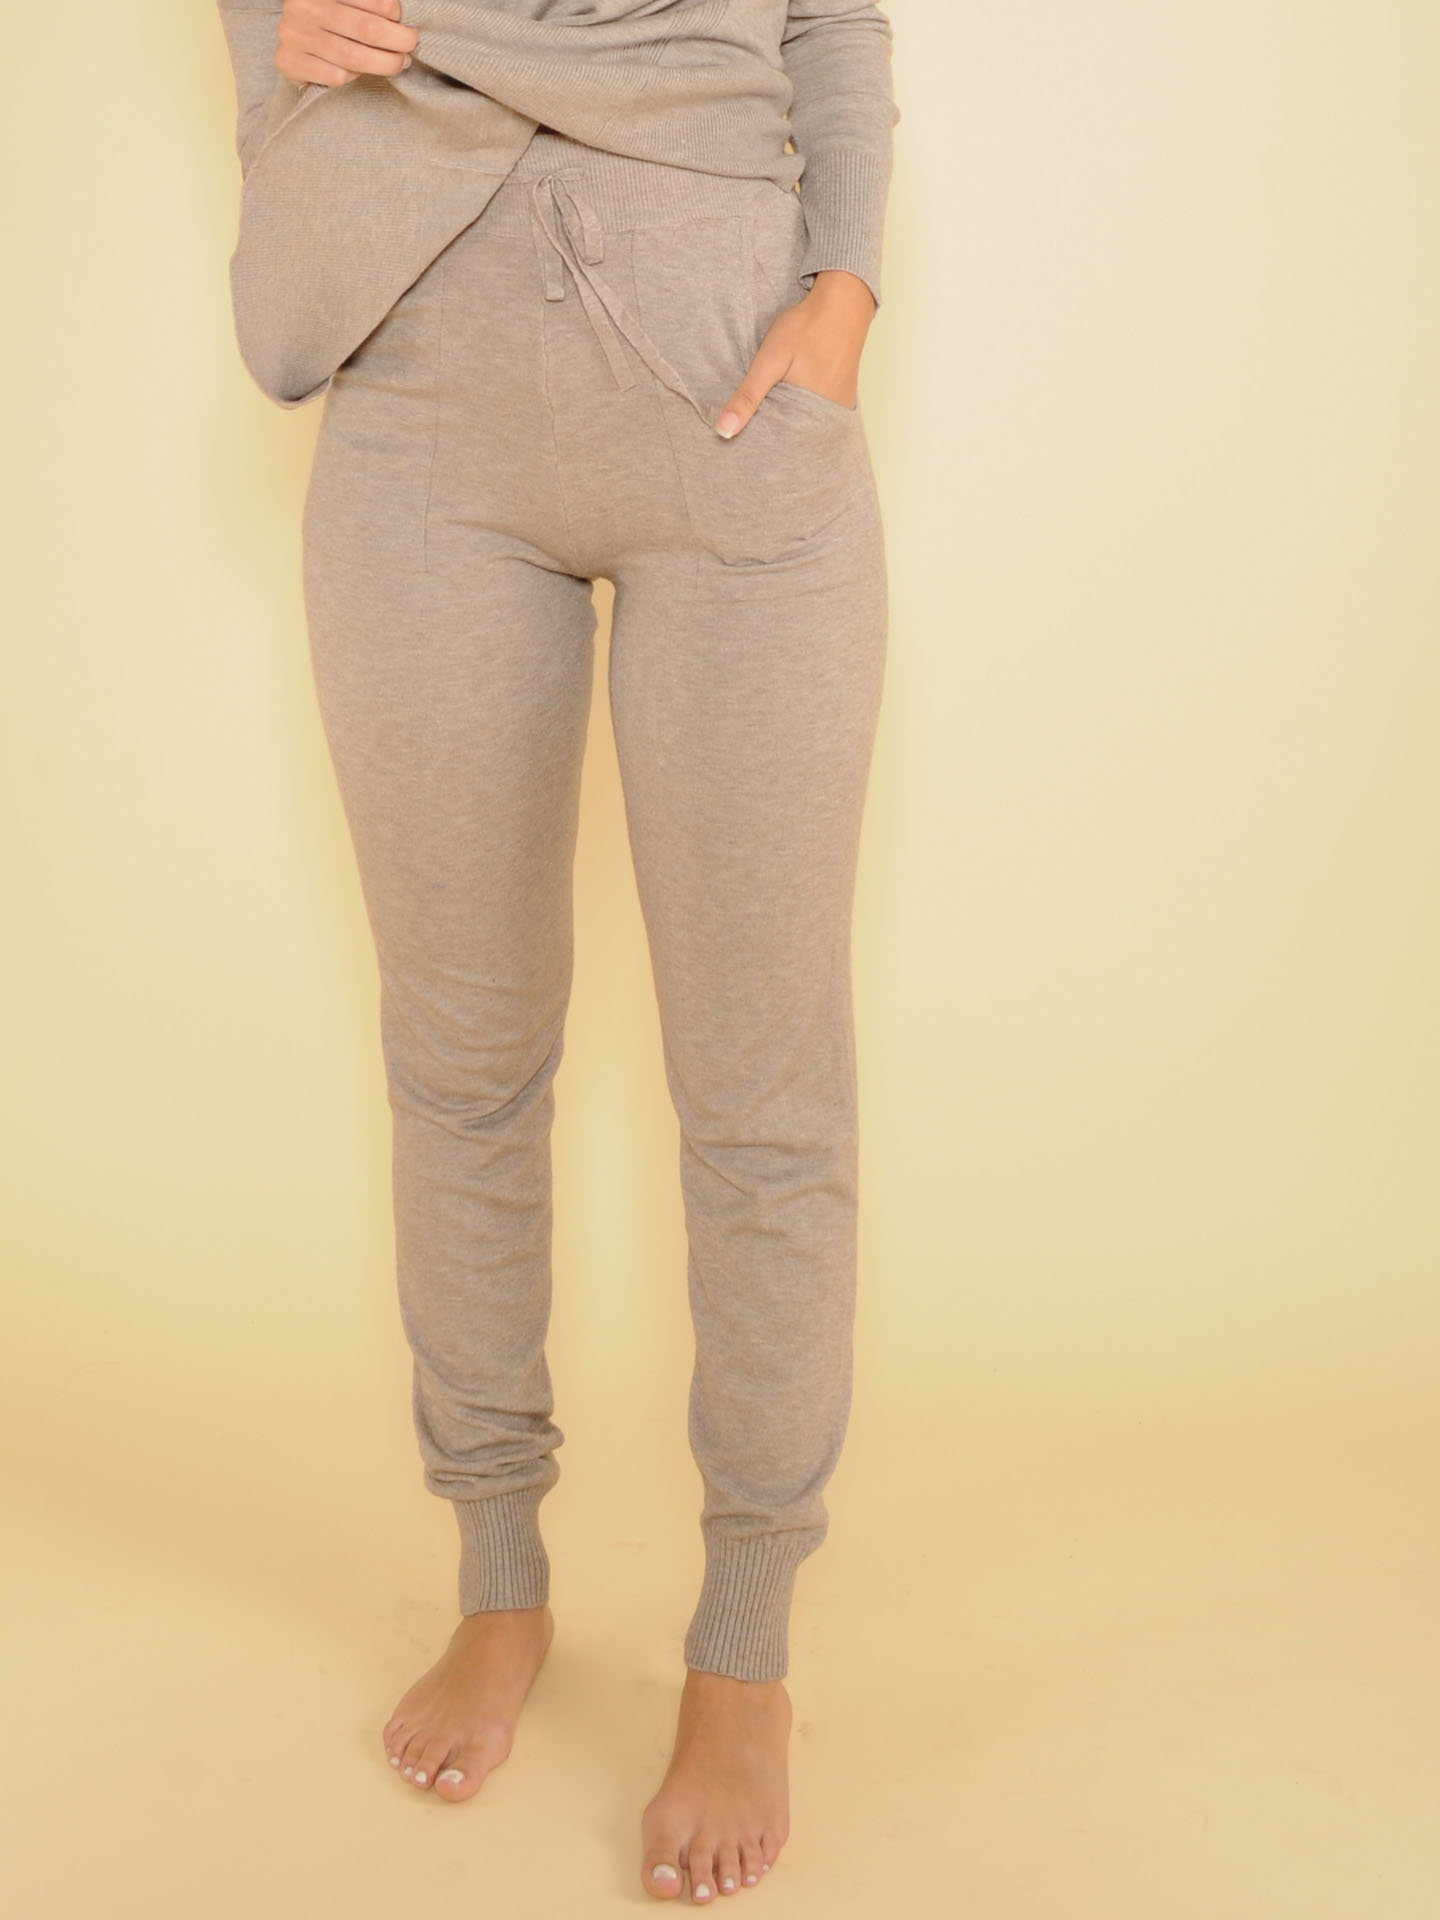 Sleepy Style Jogger Grey High Rise Soft Bottoms